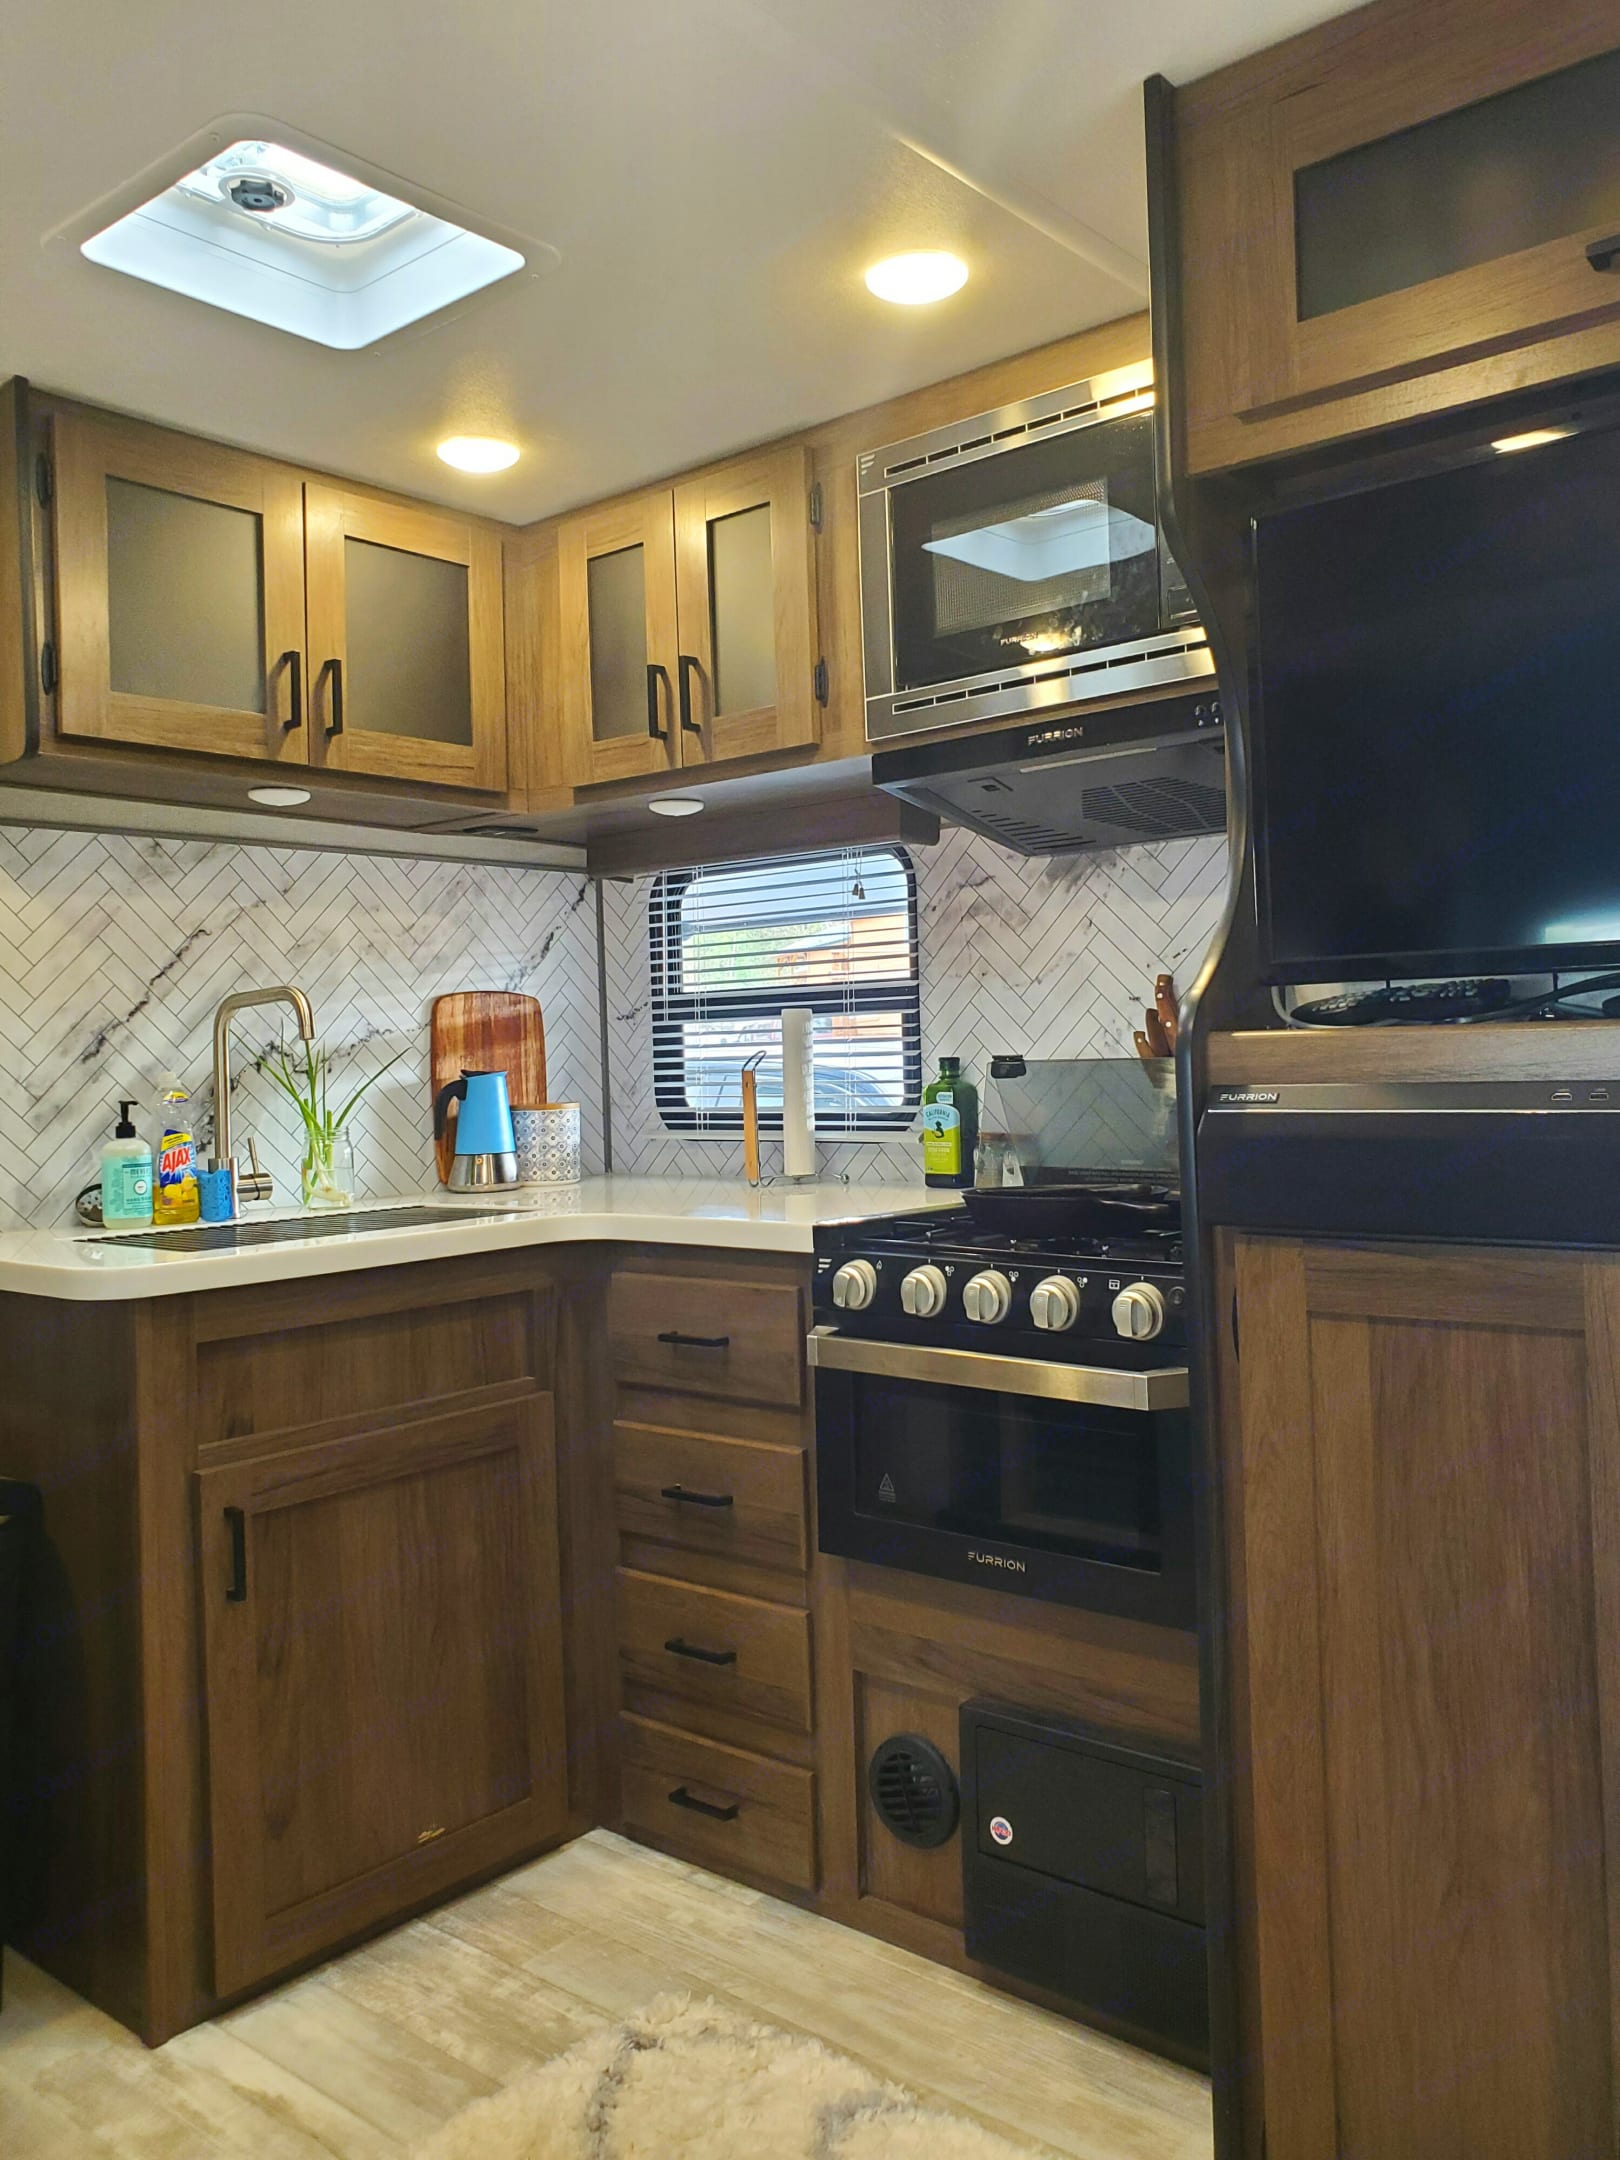 The kitchen has everything you need to cook a nice meal for the whole family!. Forest River Tracer 2021